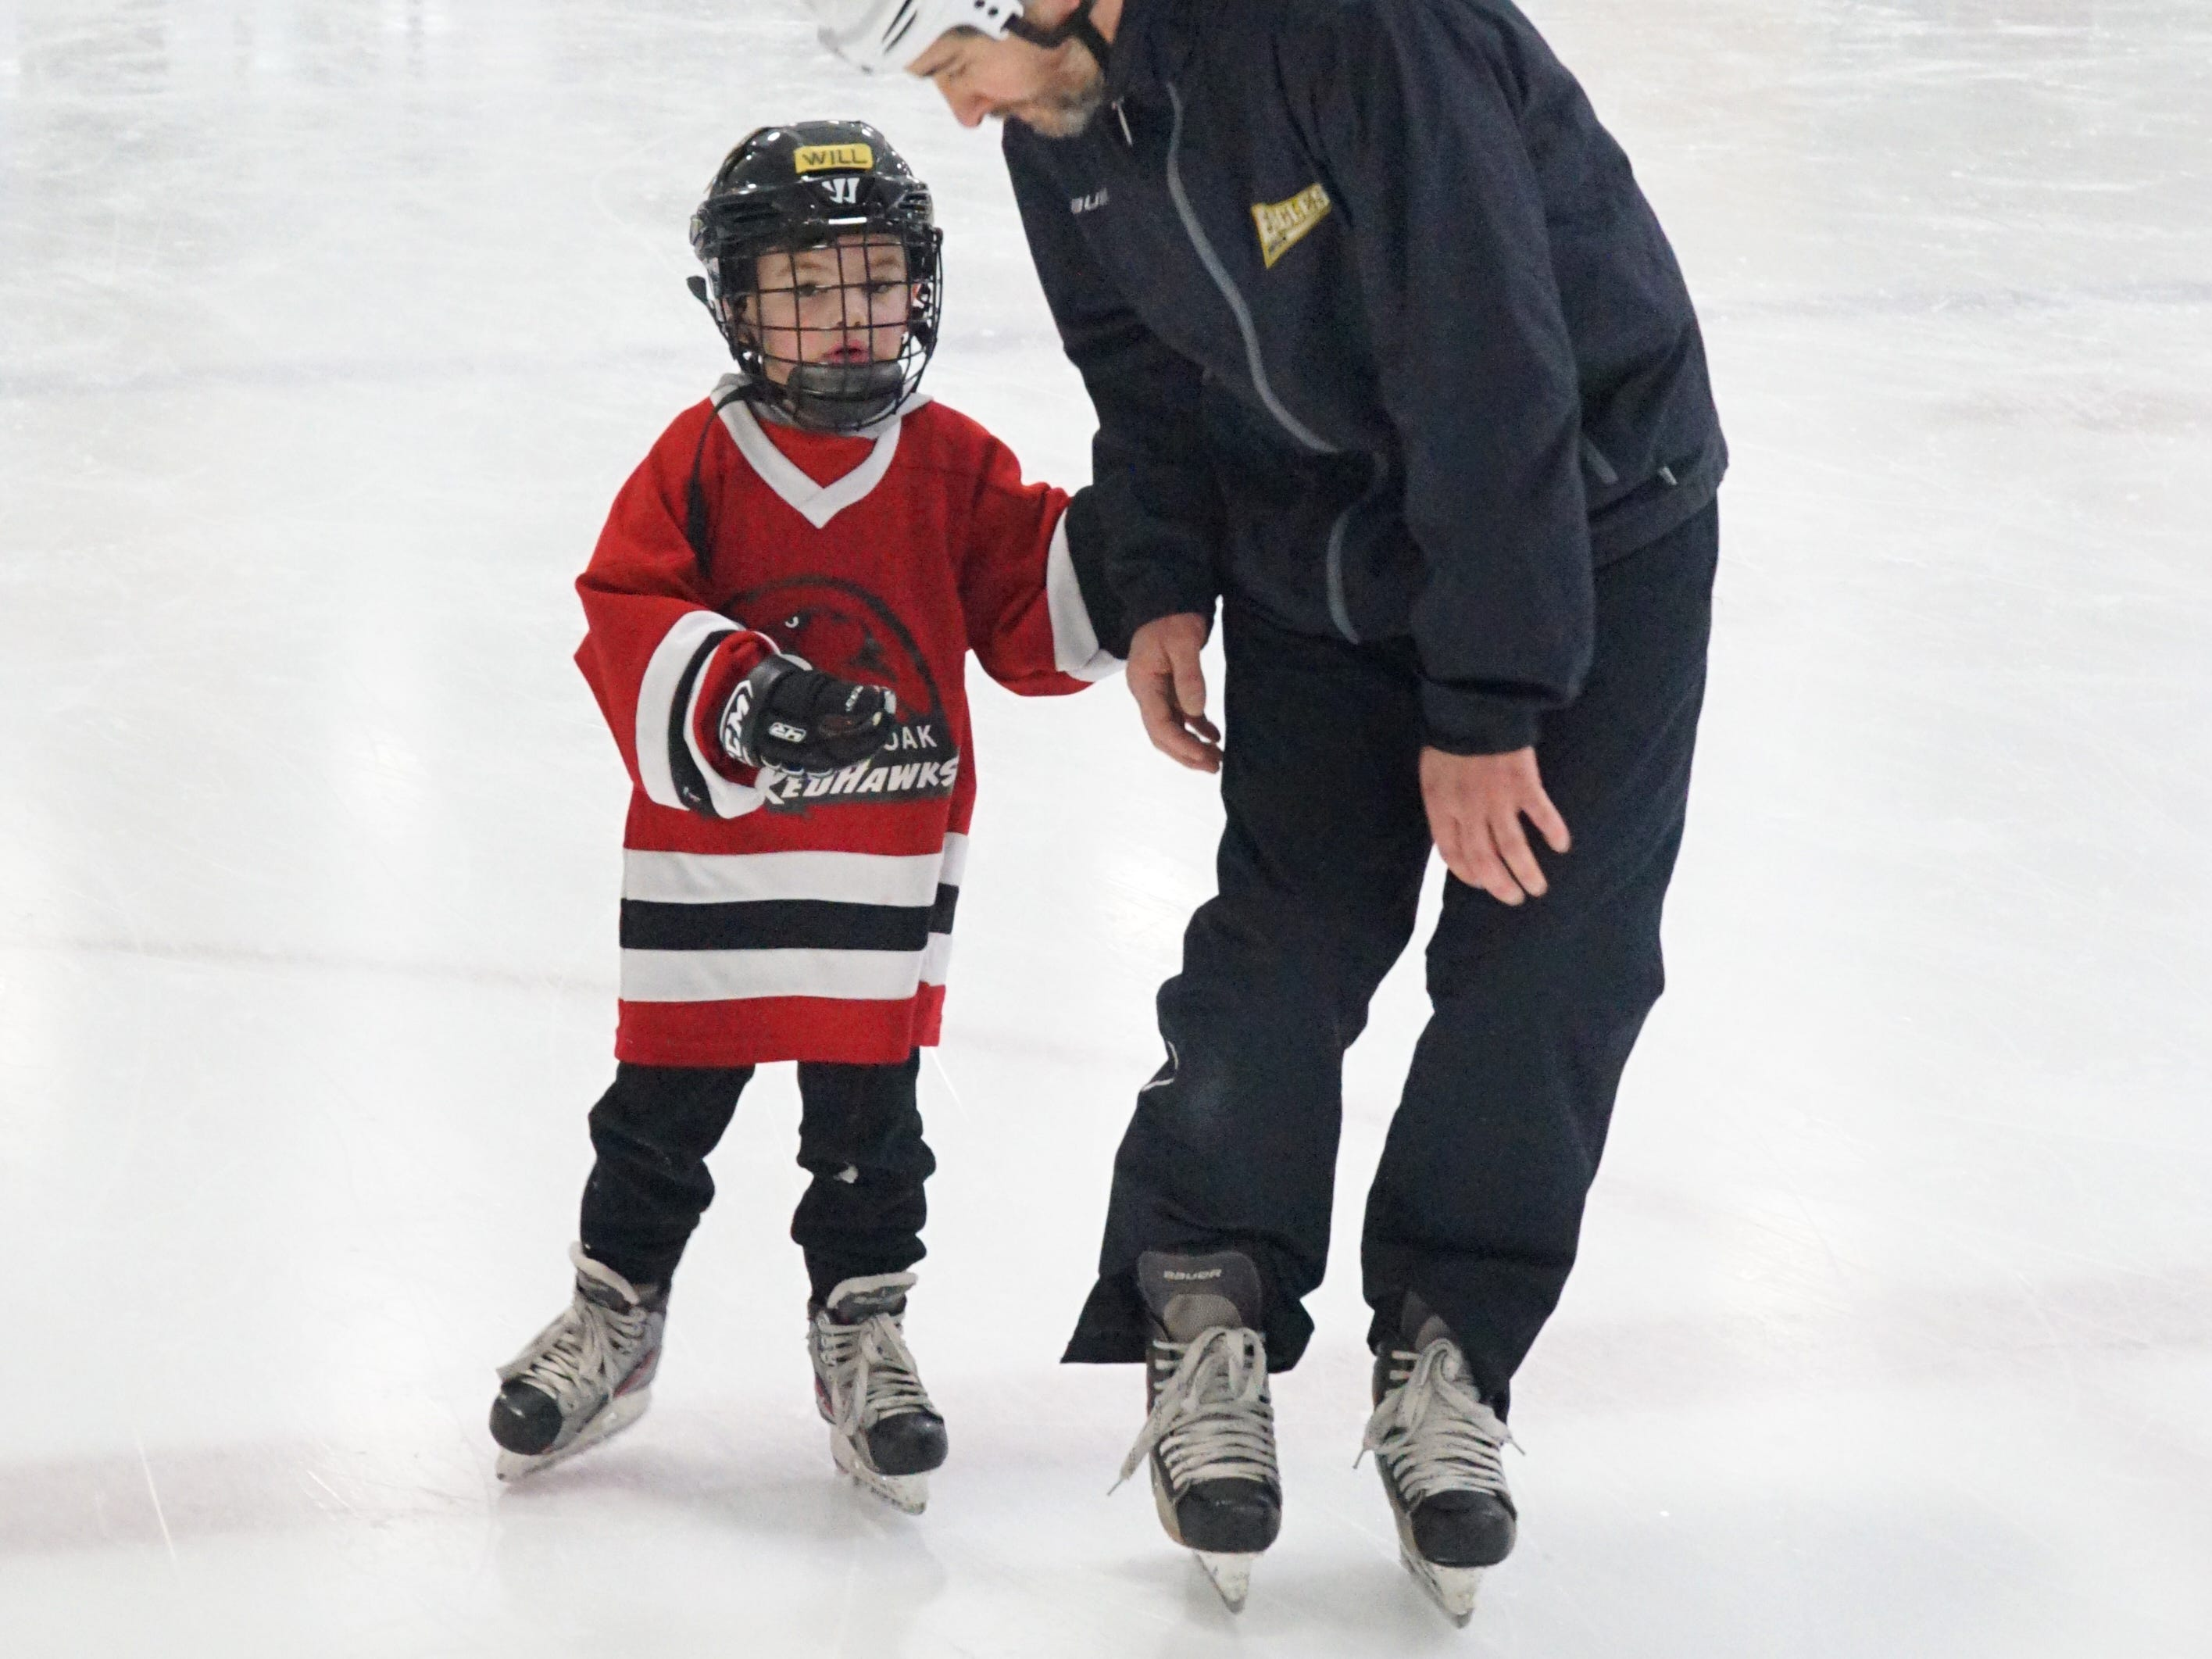 Dan Shrake talks to his son Will, 5, as the two skate around the Birmingham Ice Arena on Feb. 22.